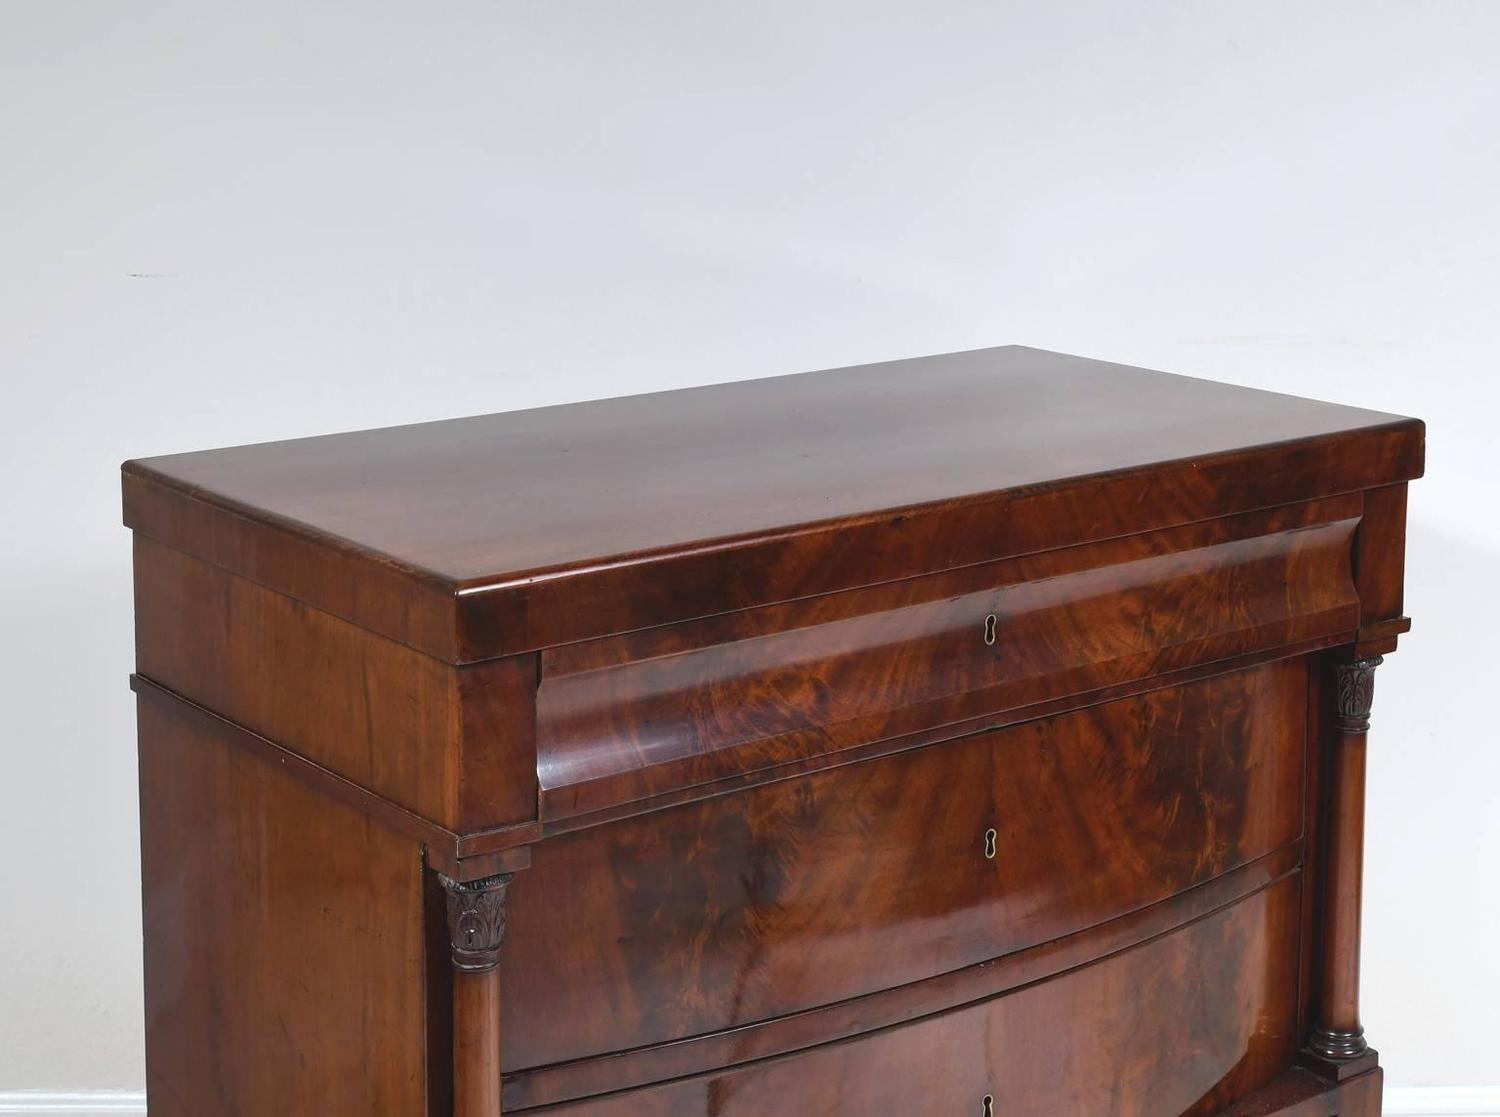 night eu handles a or classic stand portfolio danish of drawers futureantiques legs teak charming chest drawer with small solid petite and rare layout table midcentury